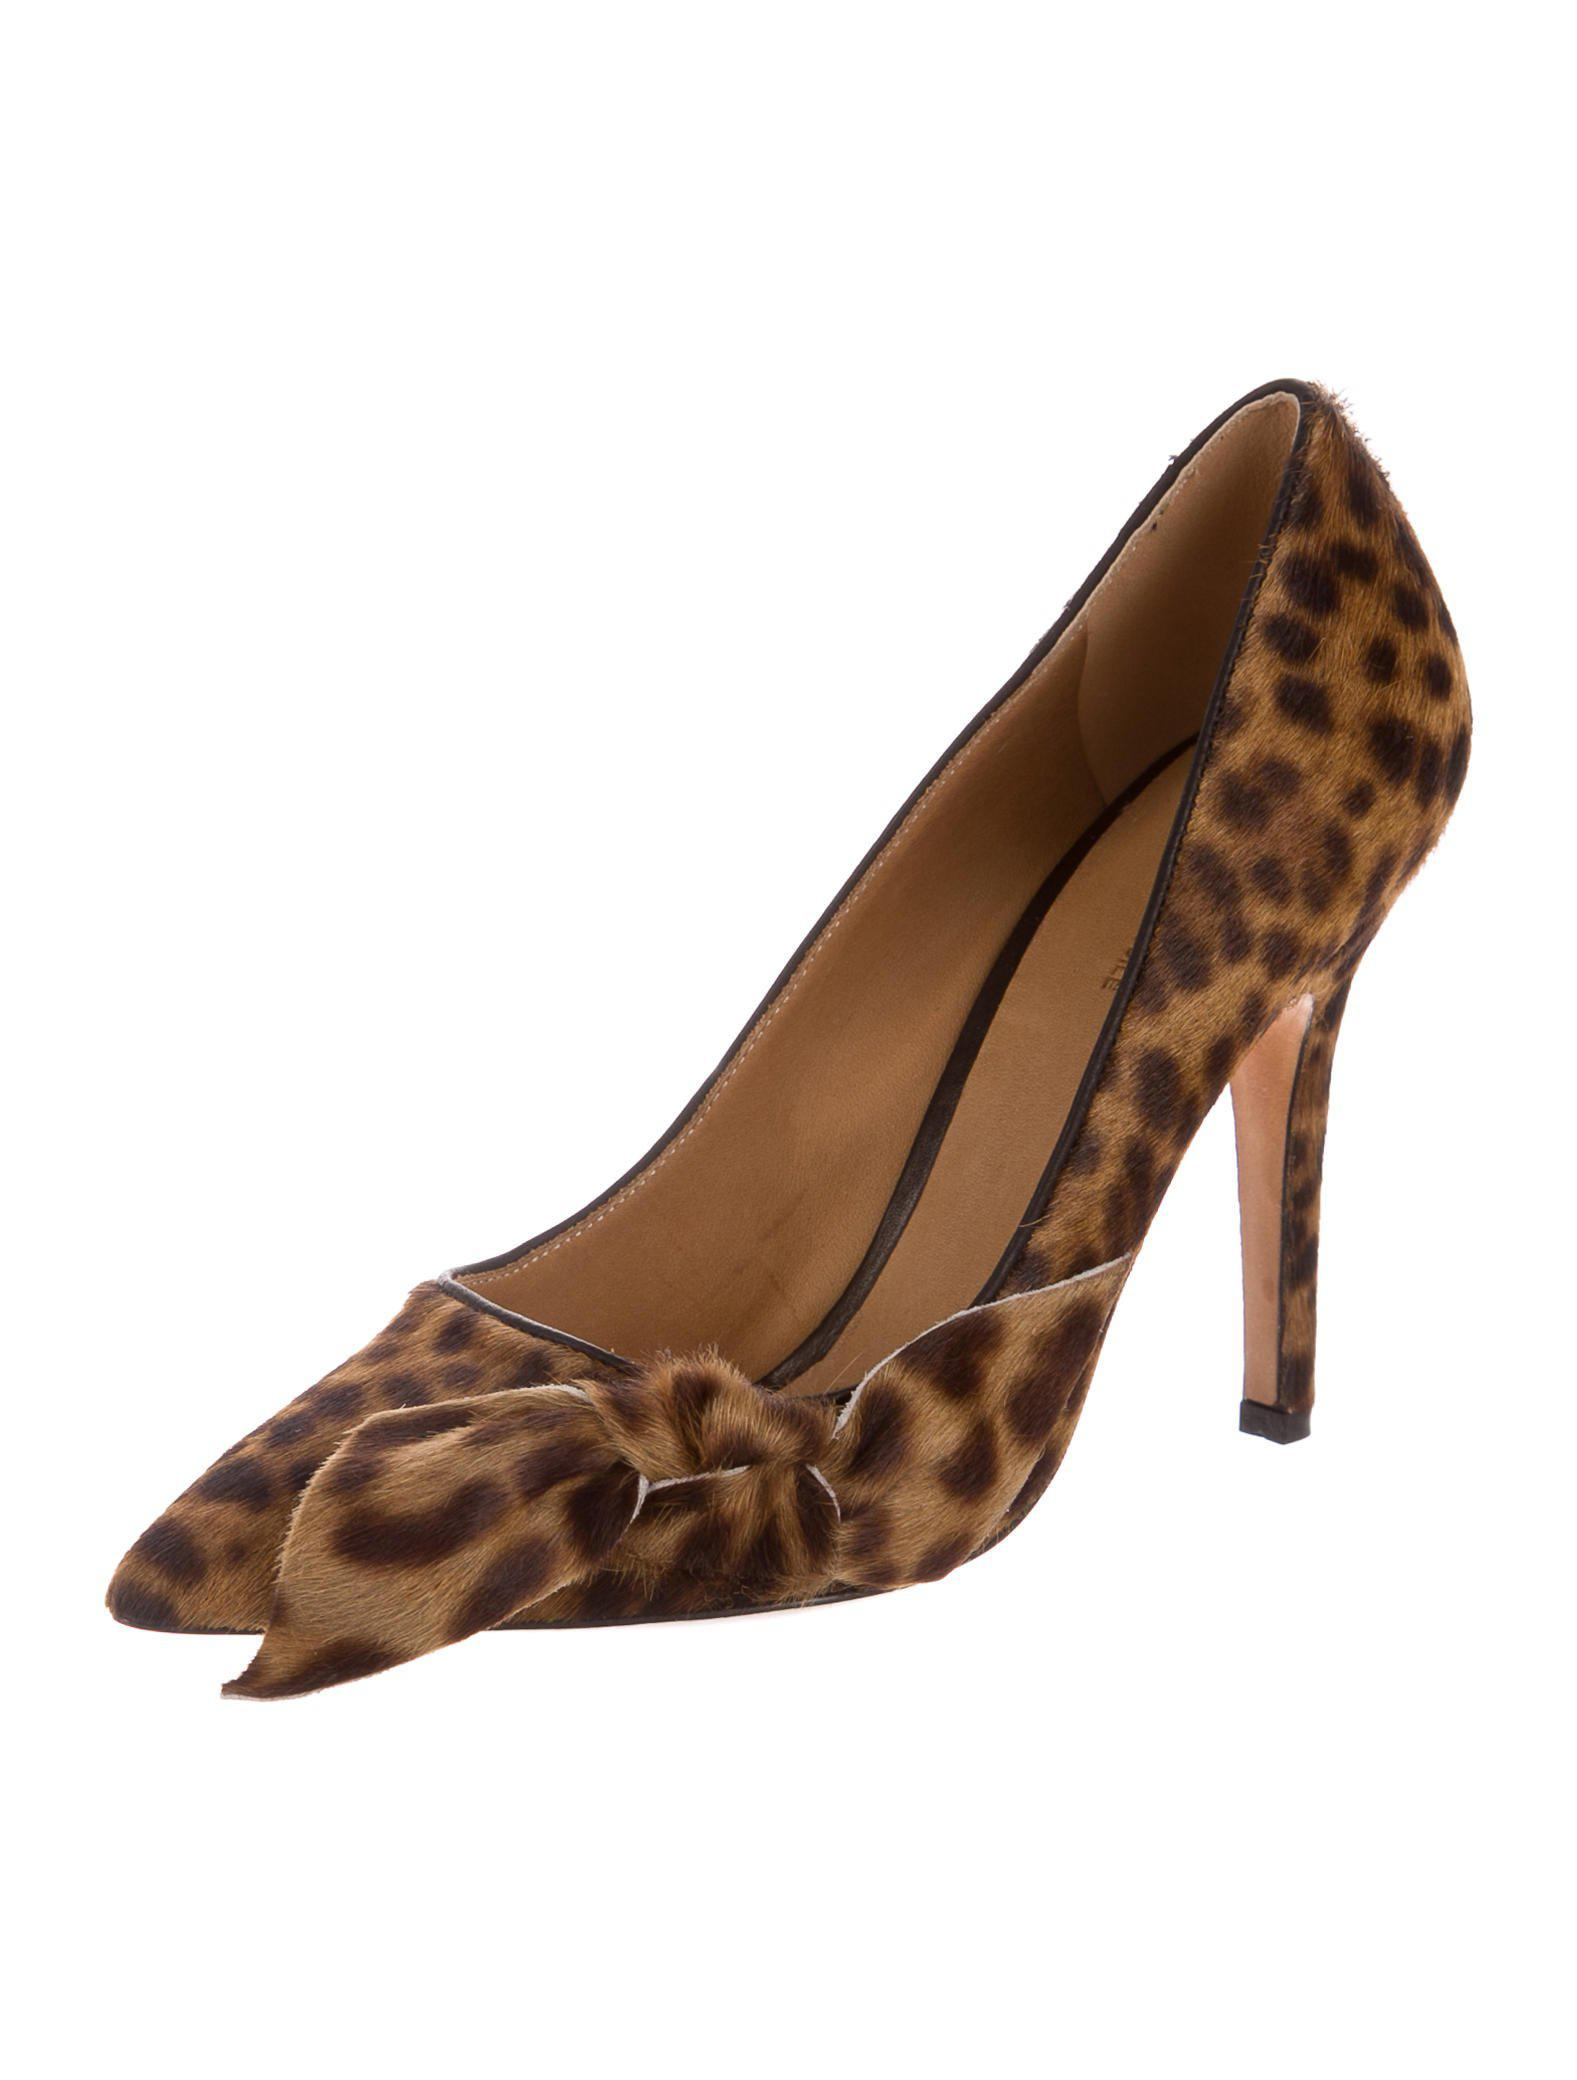 buy sale online Inexpensive Étoile Isabel Marant Ponyhair Pointed-Toe Pumps low shipping fee cheap price outlet countdown package cheap sale eastbay 12KhPNt8p